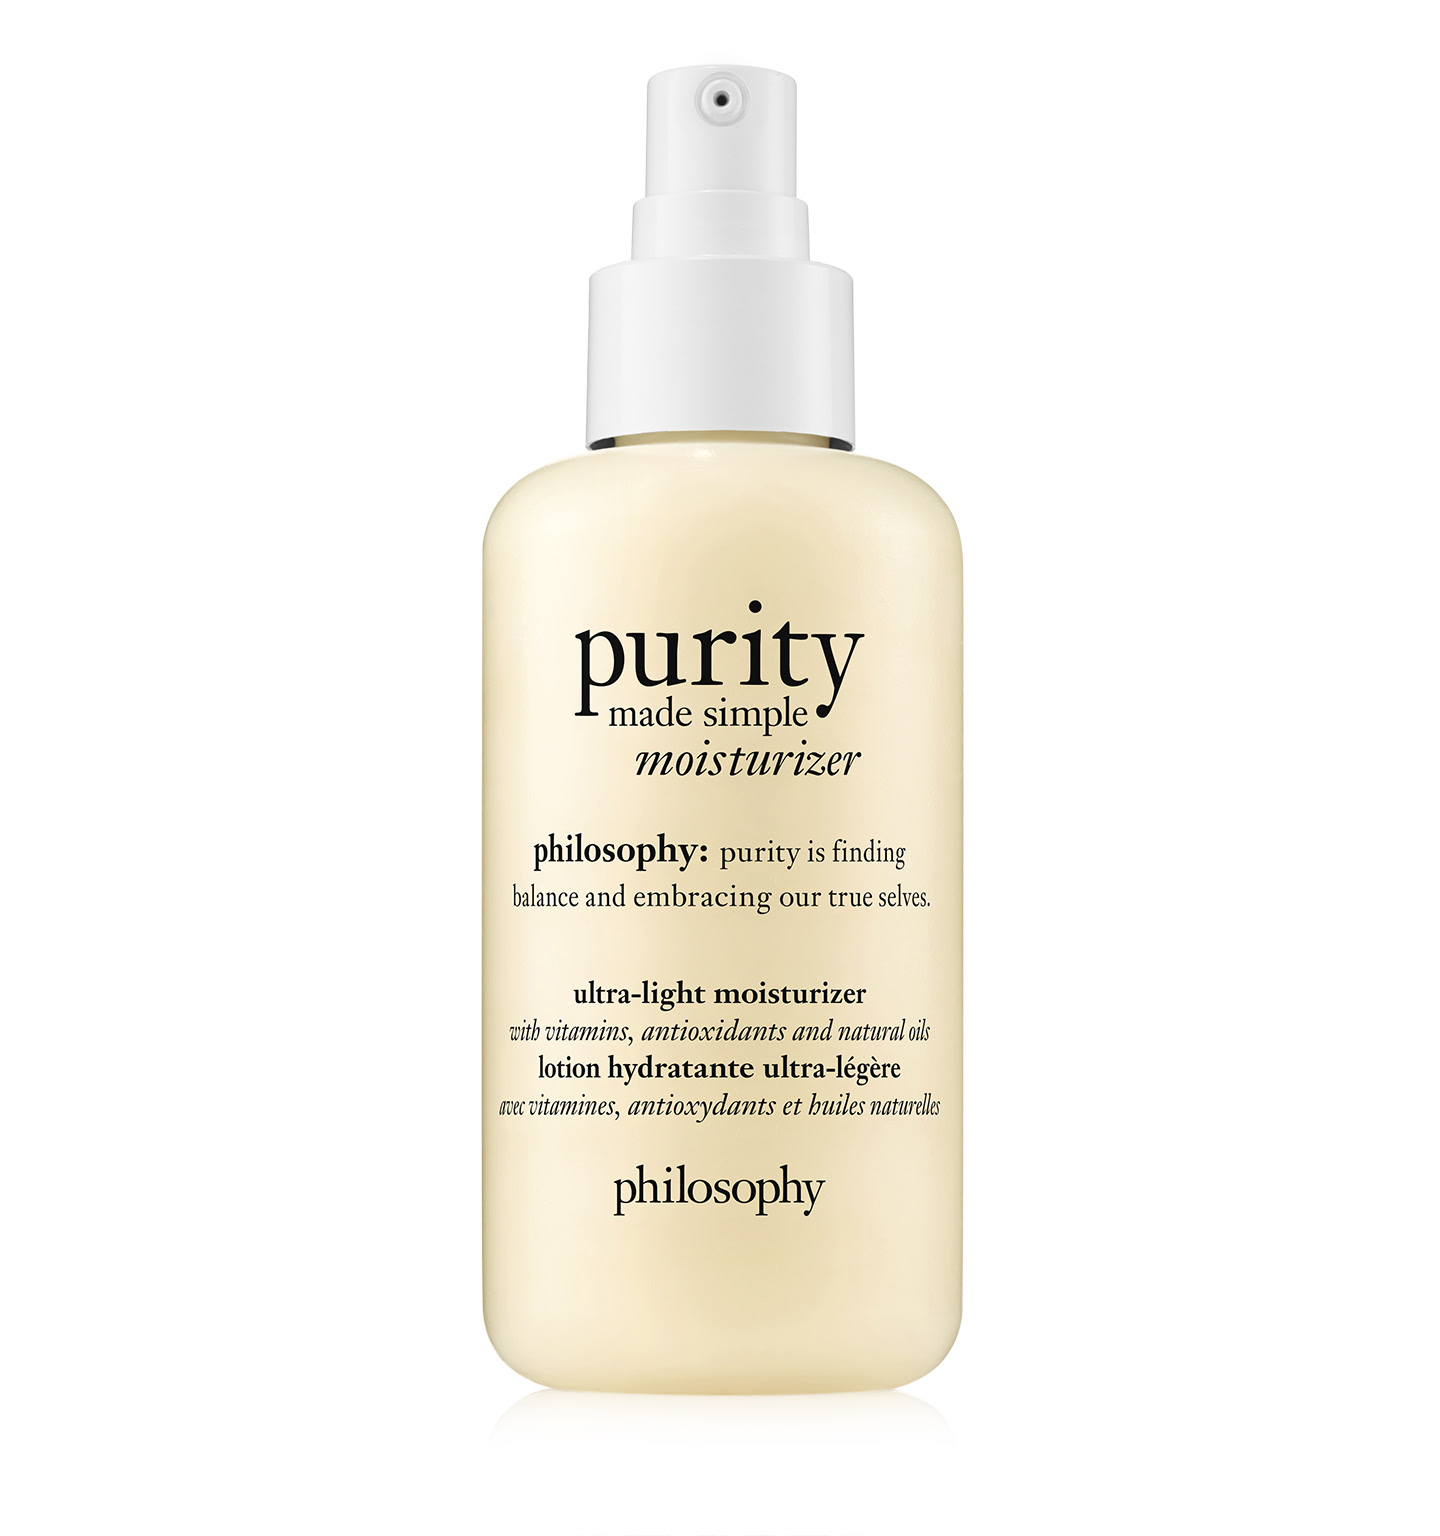 BEAUTY: Philosophy defines purity